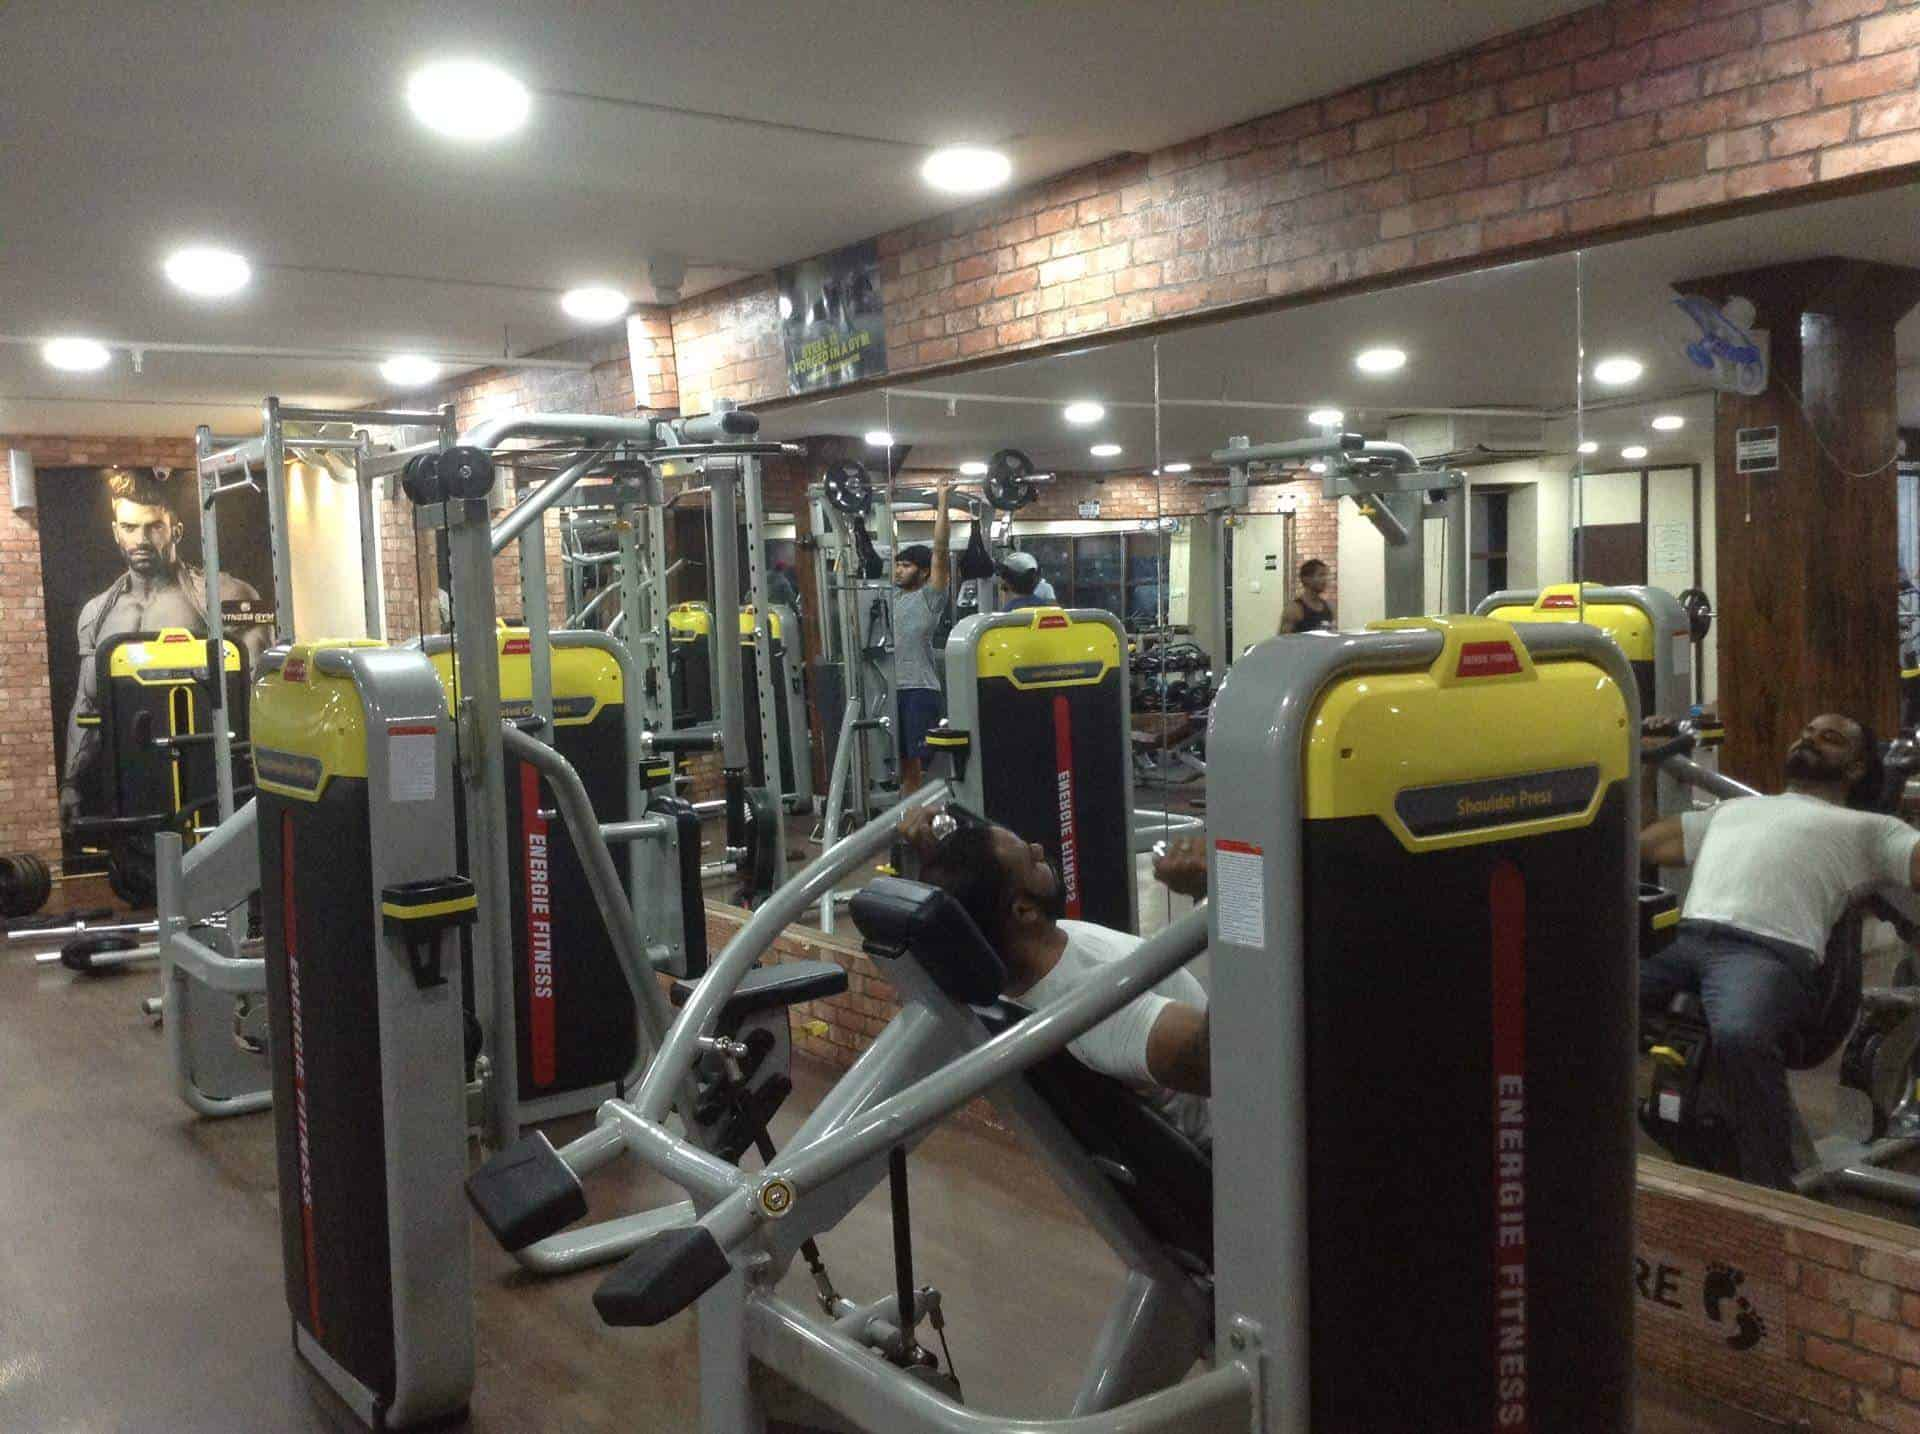 AB Fitness GYM PRO, Banjara Hills - Gyms in hyderabad - Justdial